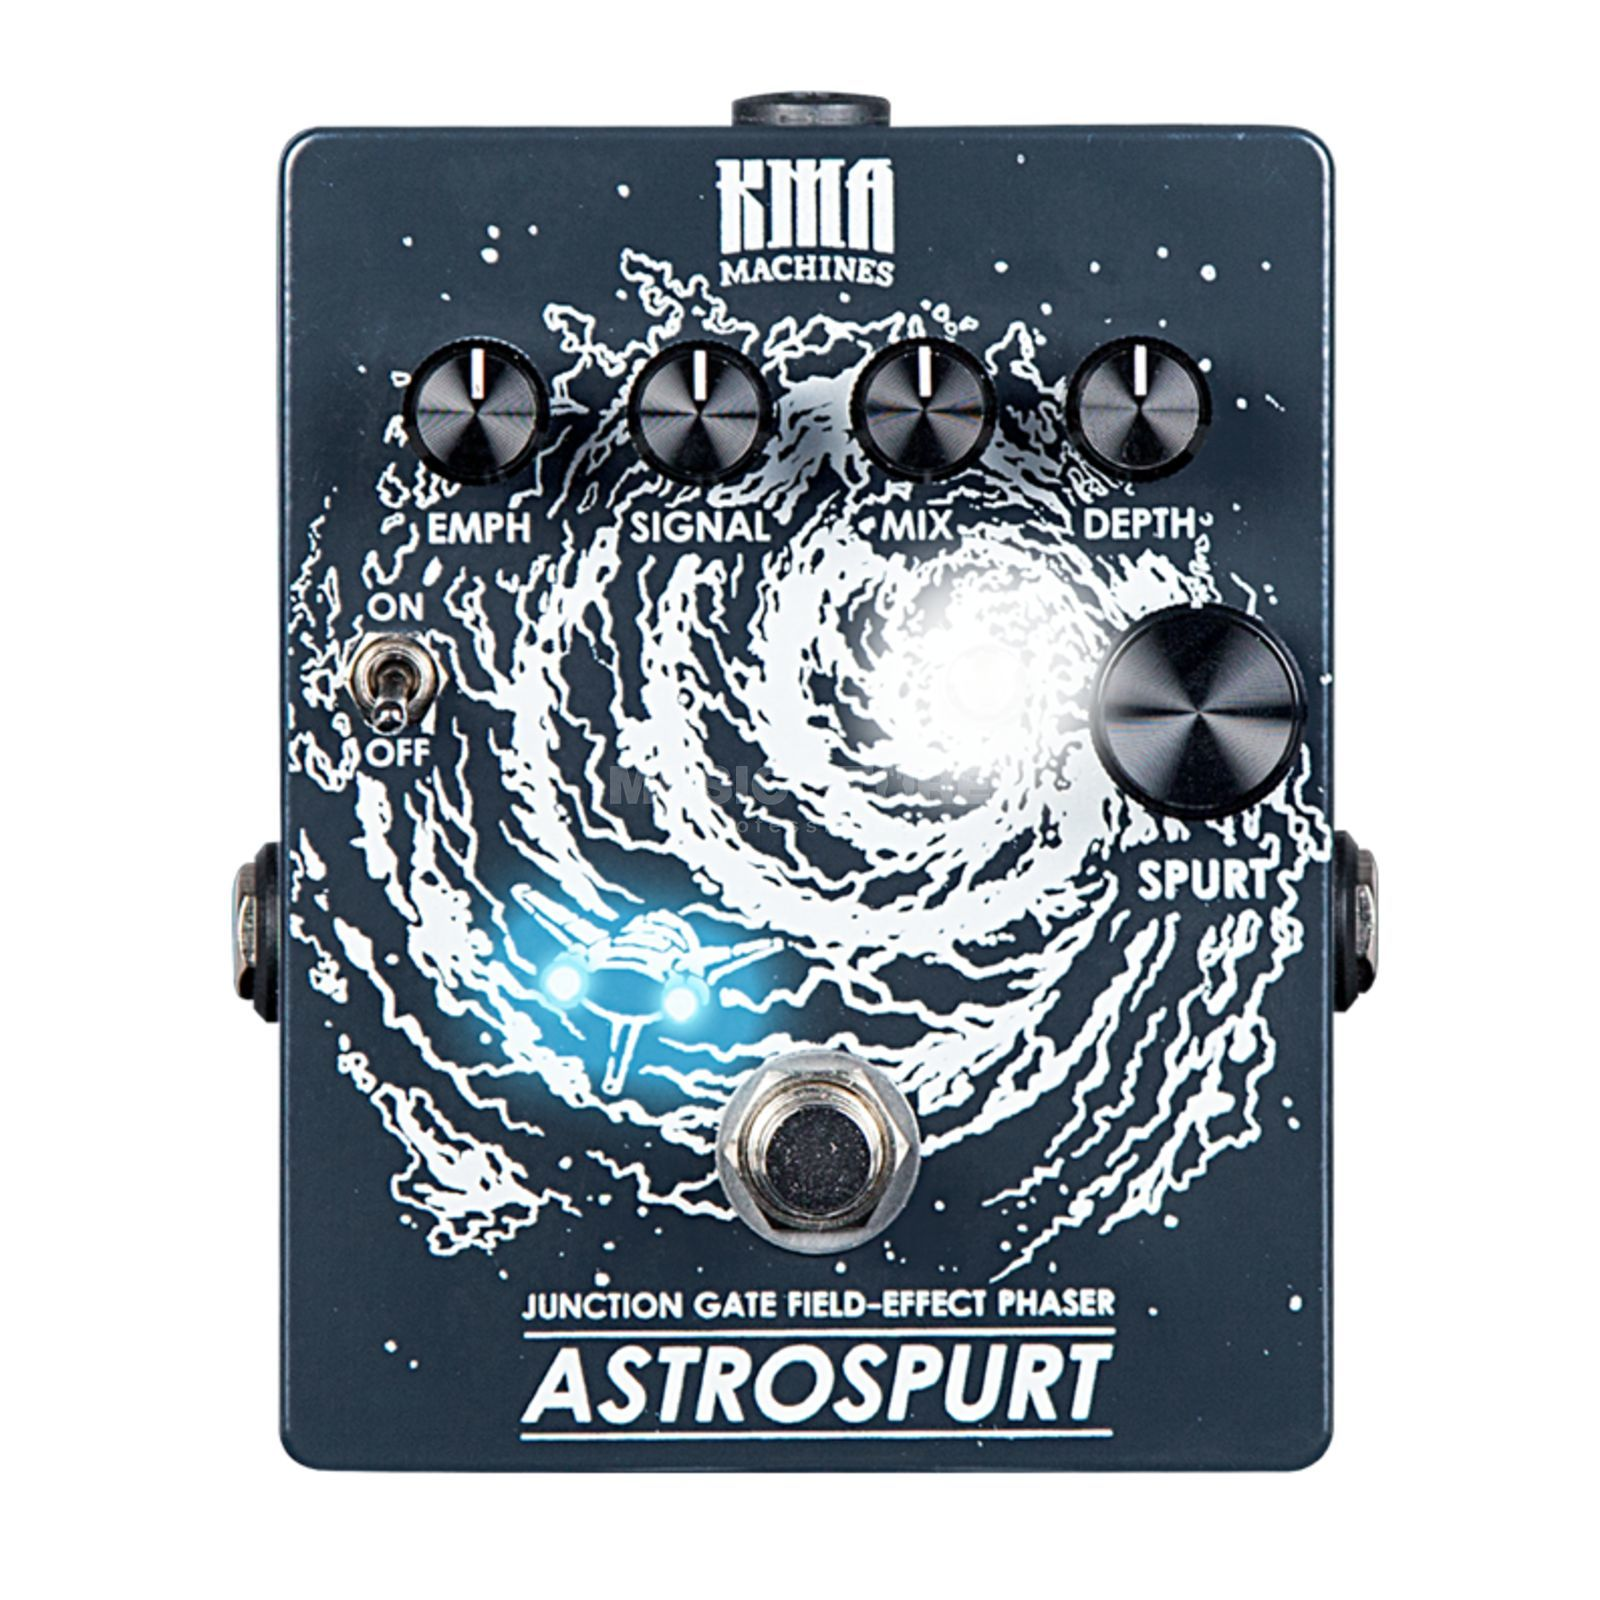 KMA Audio Machines Astrospurt Product Image